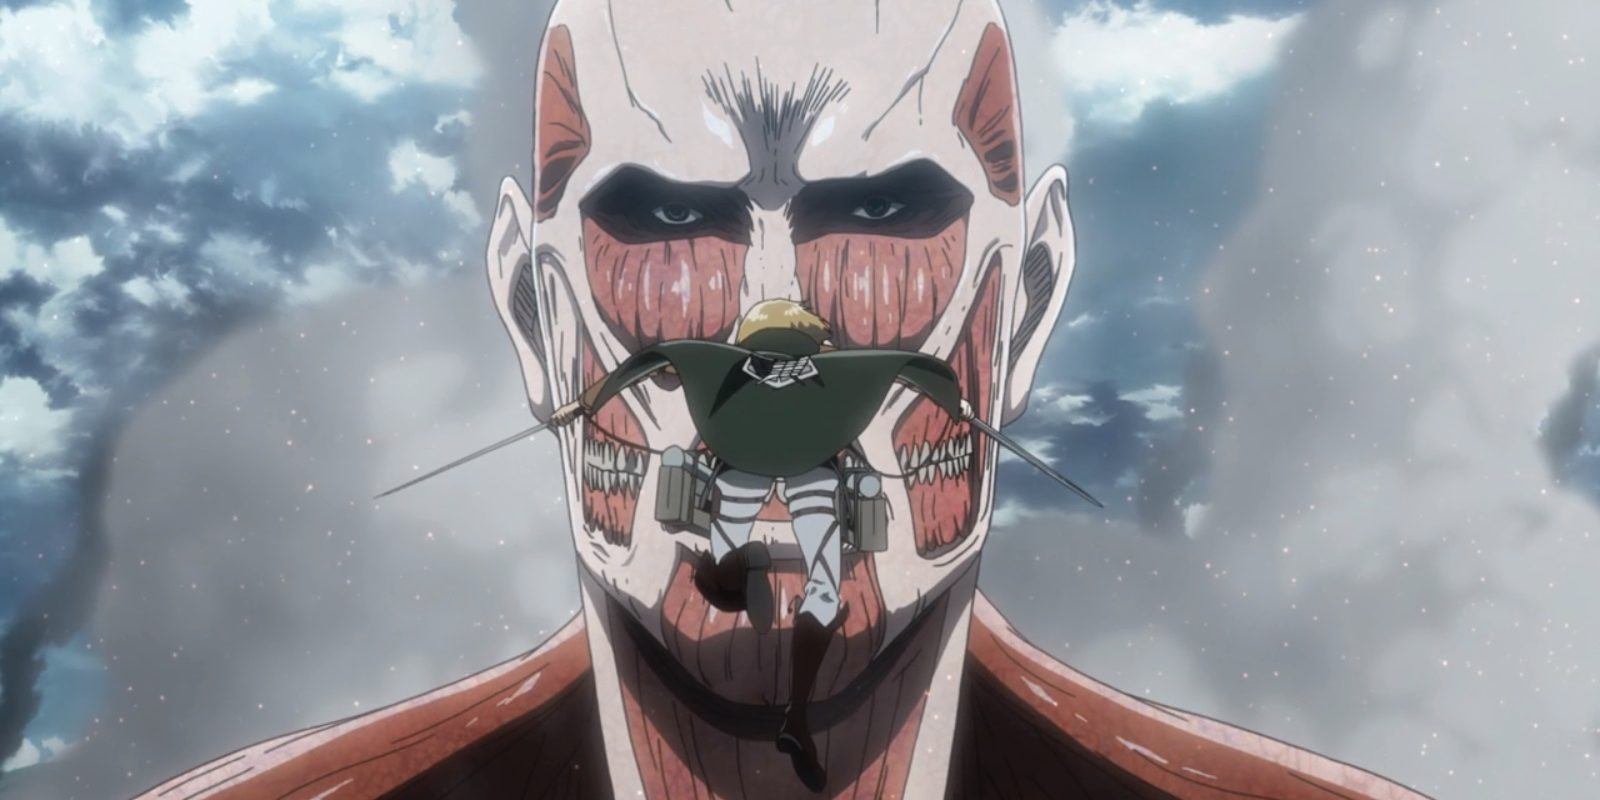 Attack on Titan 3 - Armin vs Colossus Titan